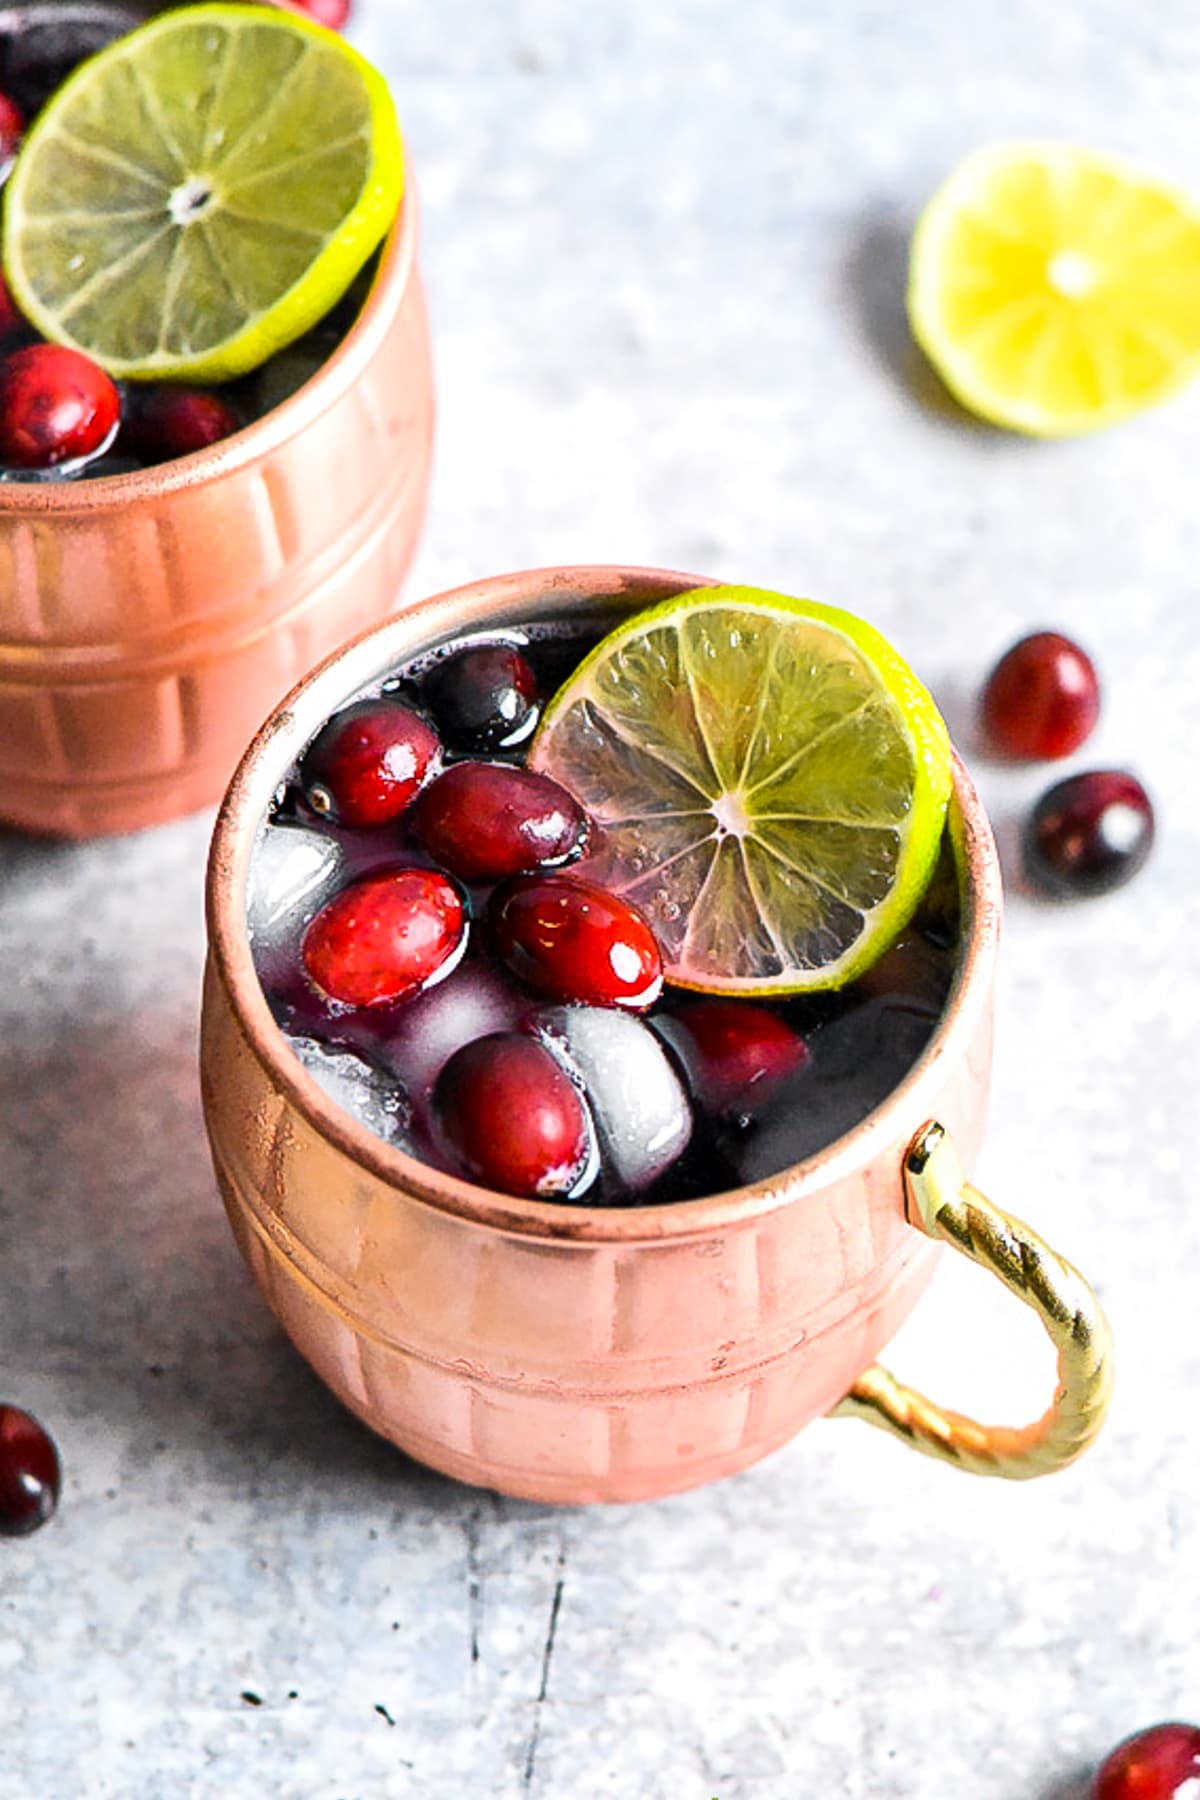 Moscow Mule served in a copper mug, topped with cranberries